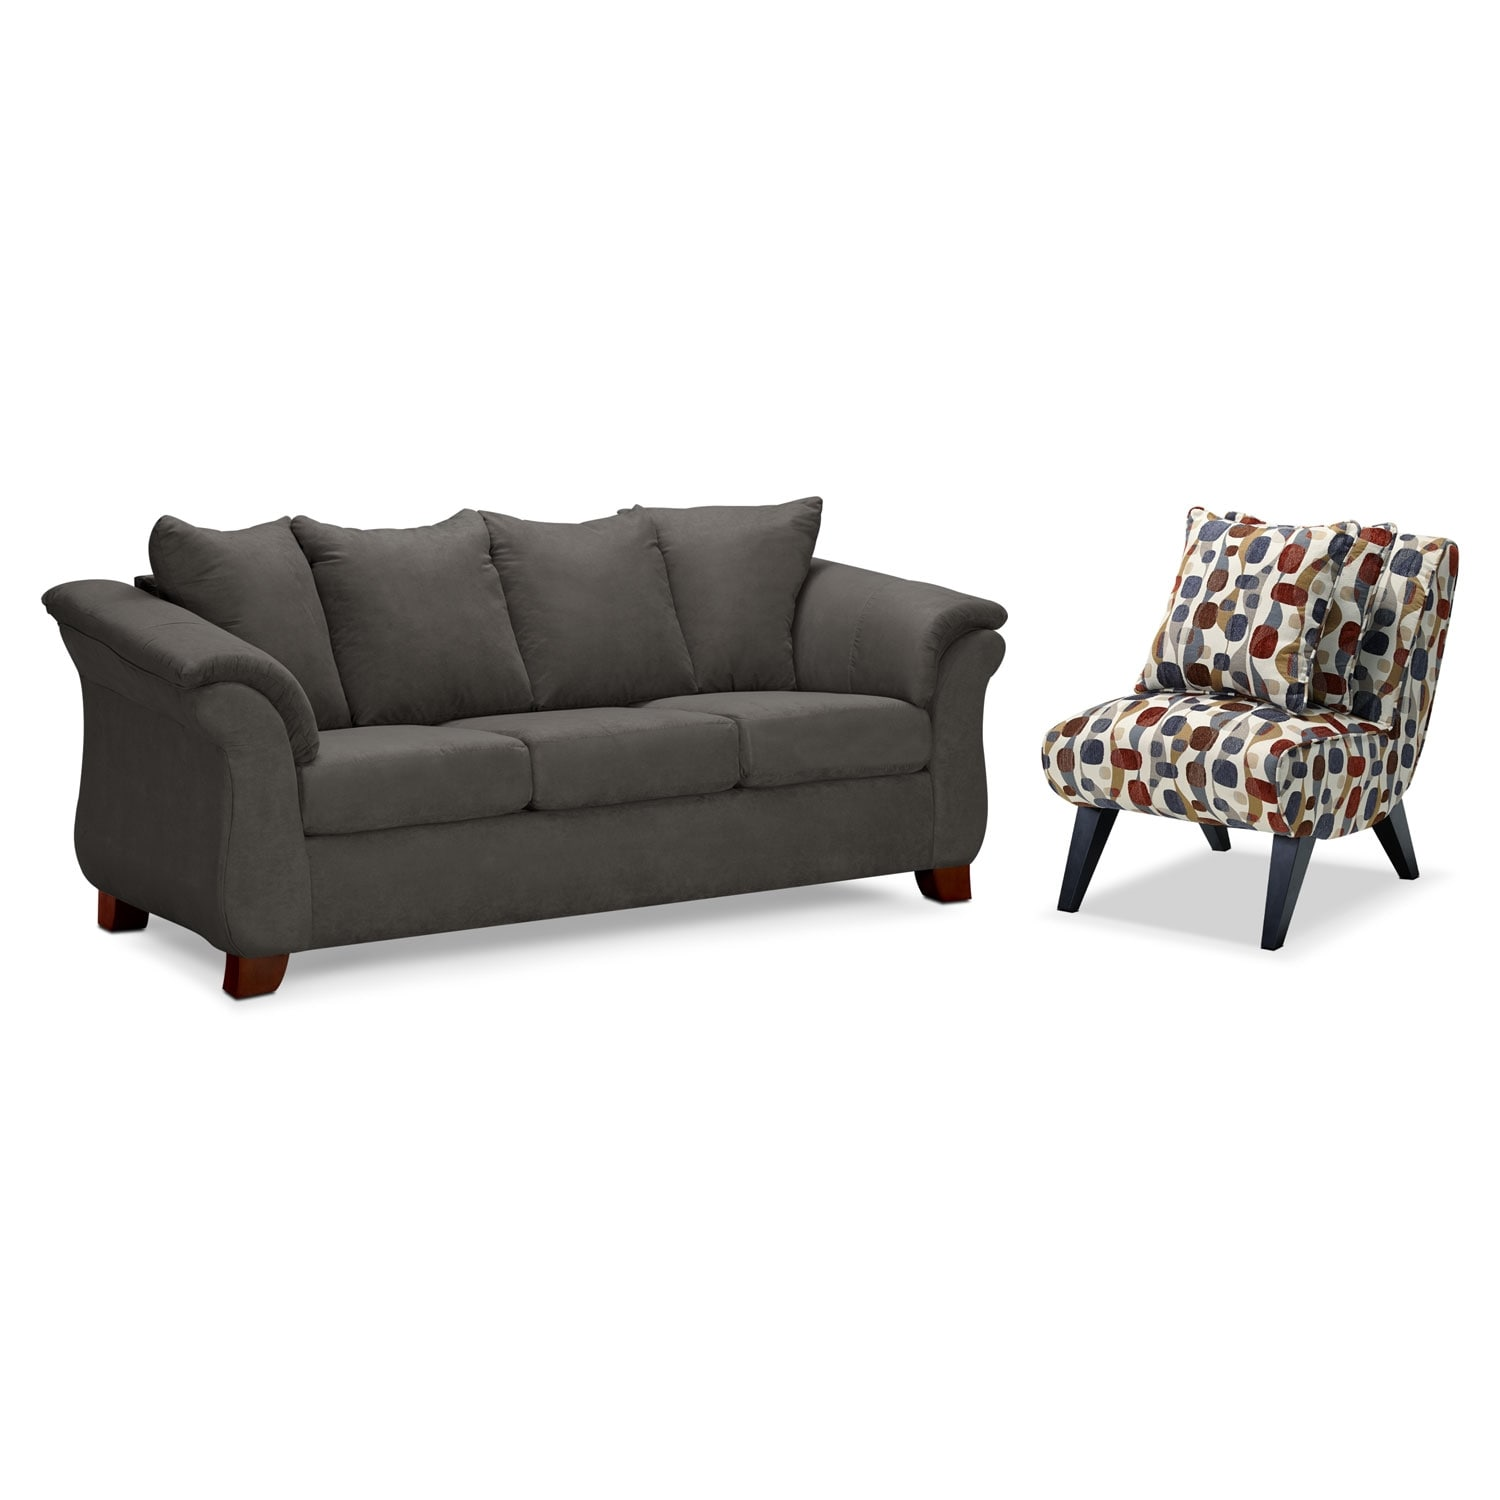 Beau Adrian Sofa And Accent Chair Set   Graphite